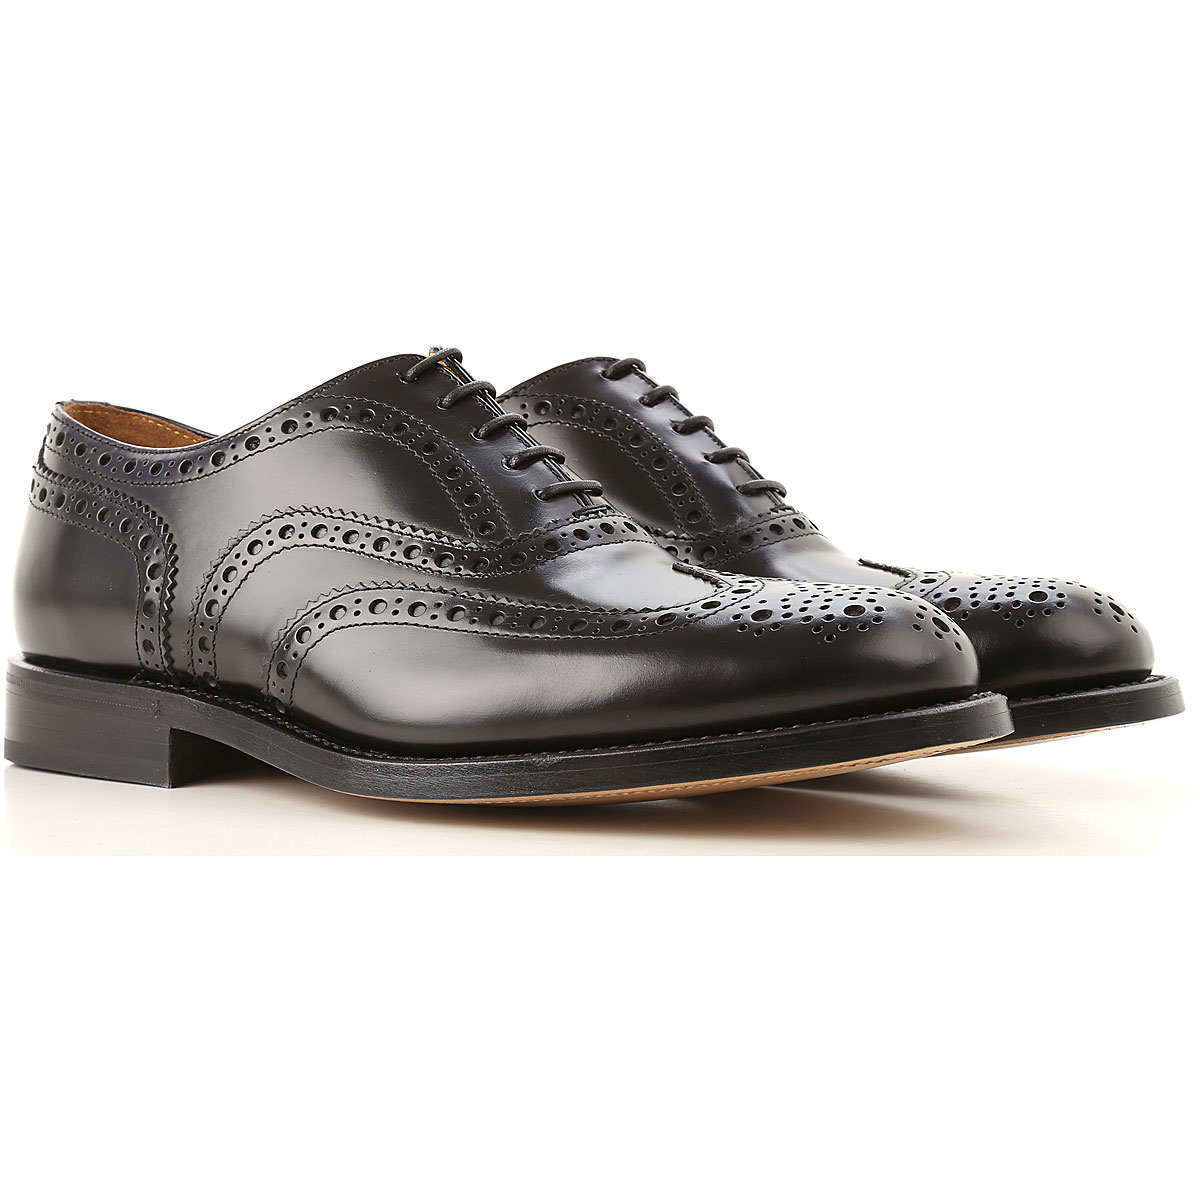 Green George Brogue Shoes, Black, Leather, 2019, 10 11 7 8 9